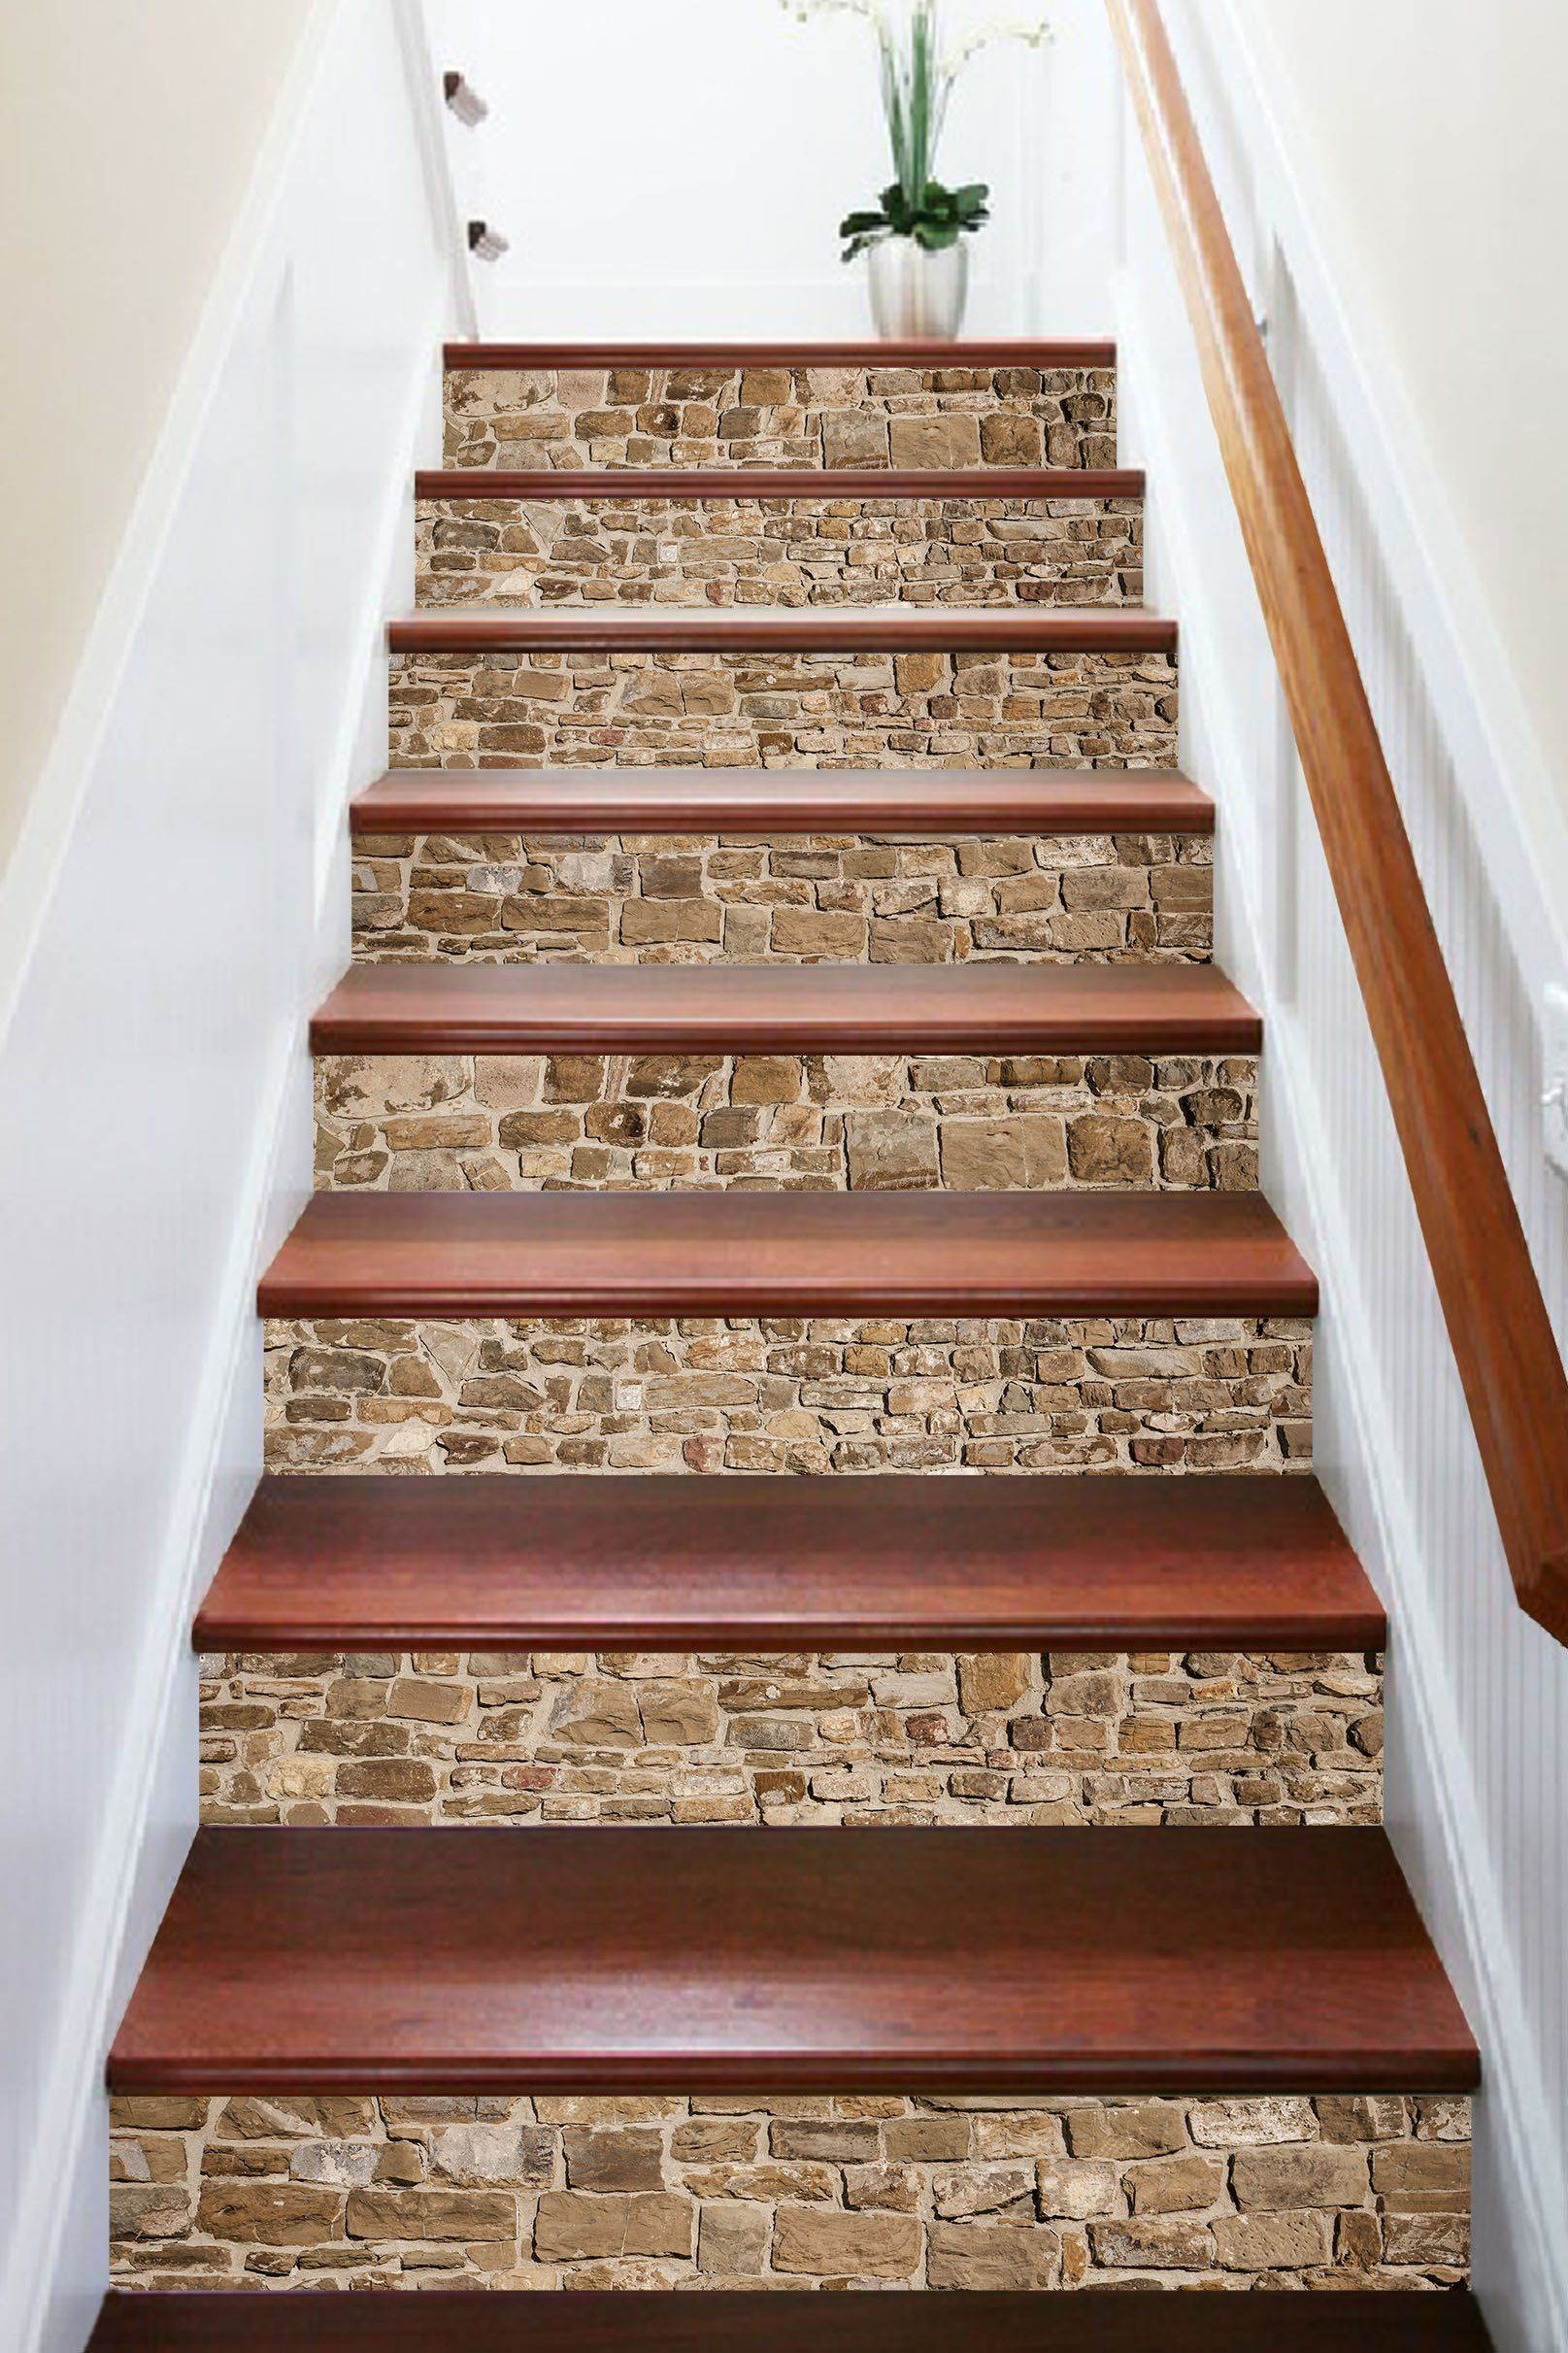 3D Vintage Brick 669 Marble Tile Texture Stair Risers | Tiles Design For Stairs Wall